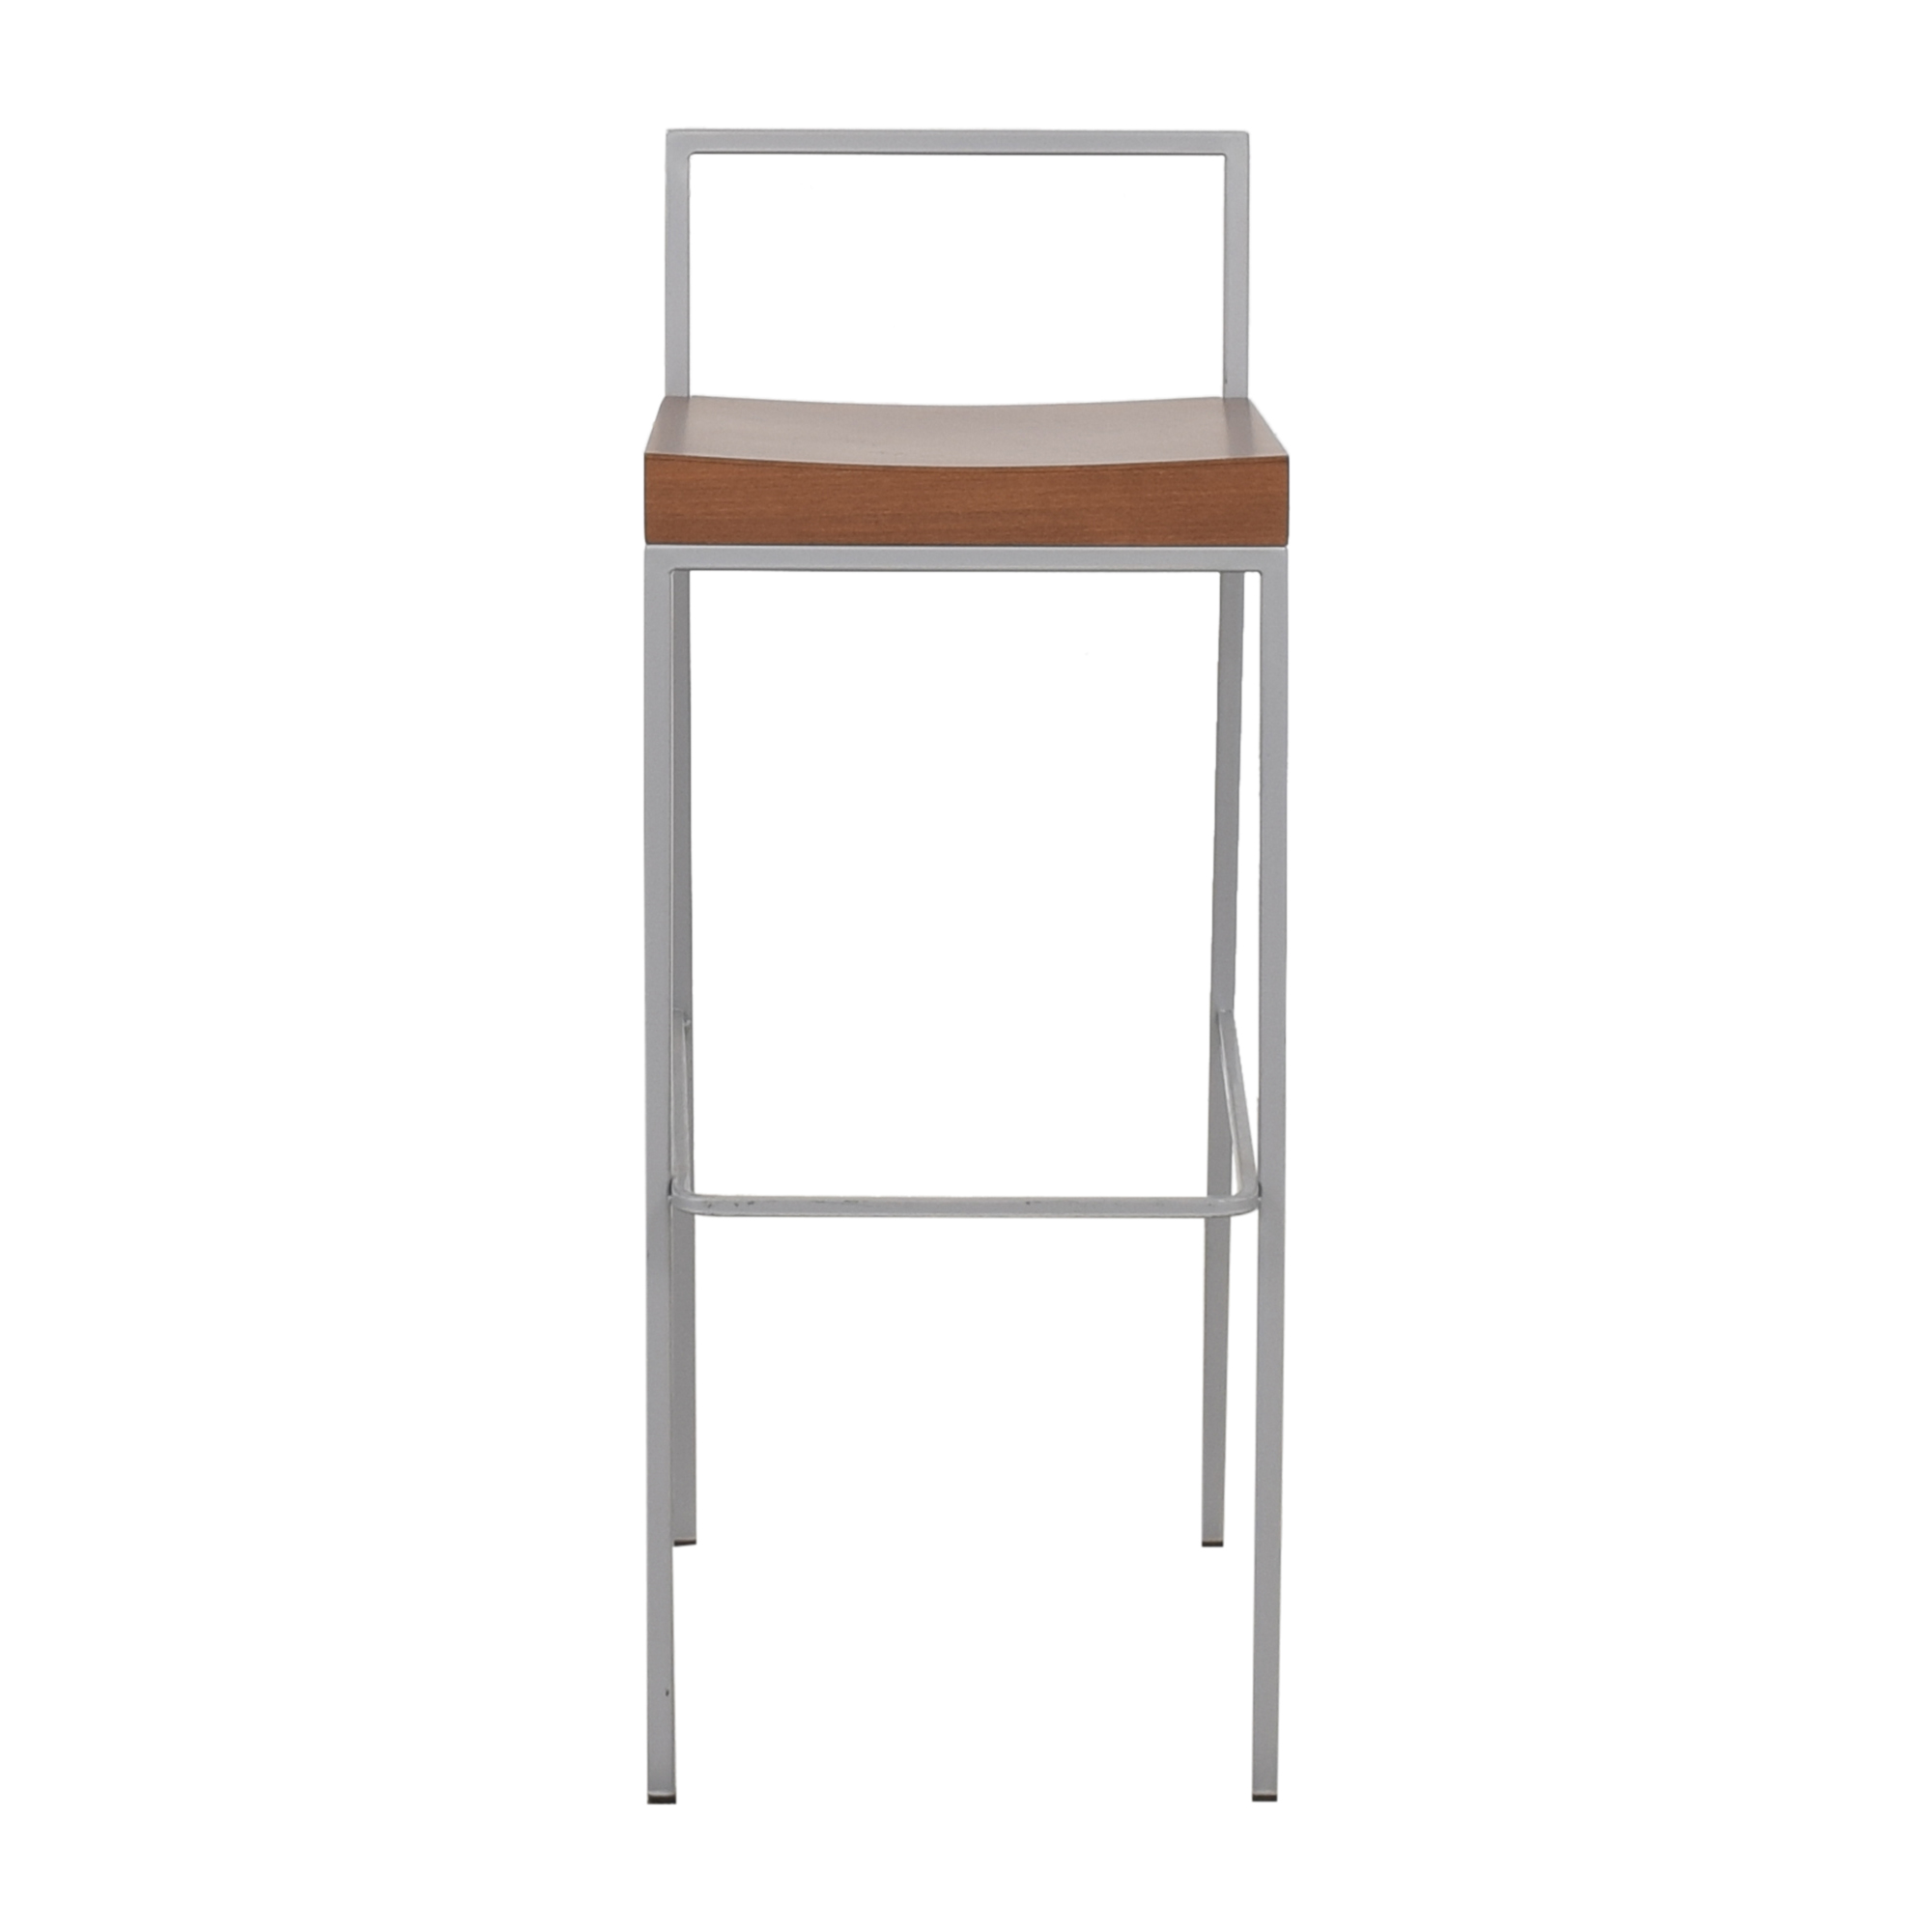 Bross Bross Master Contemporary Bar Stool second hand